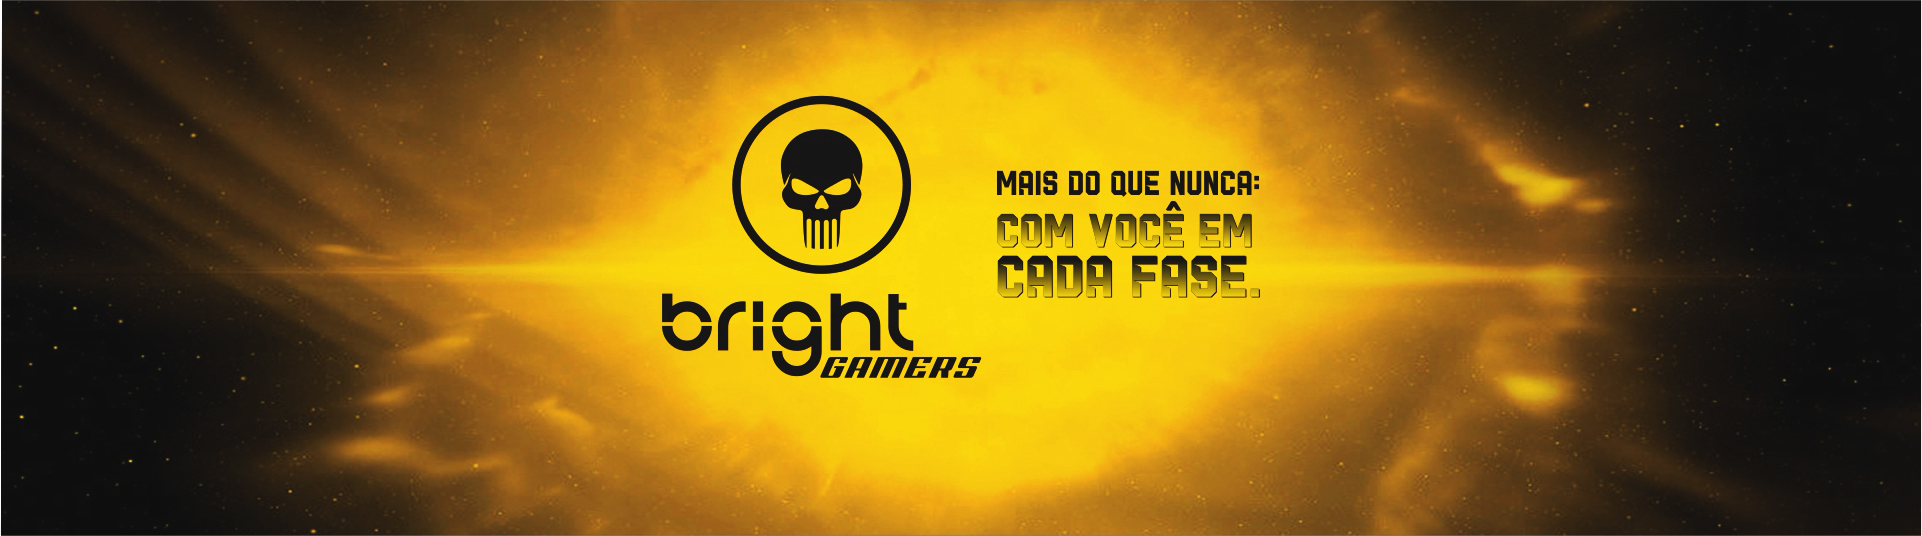 banner_BRIGHT_GAMERS4